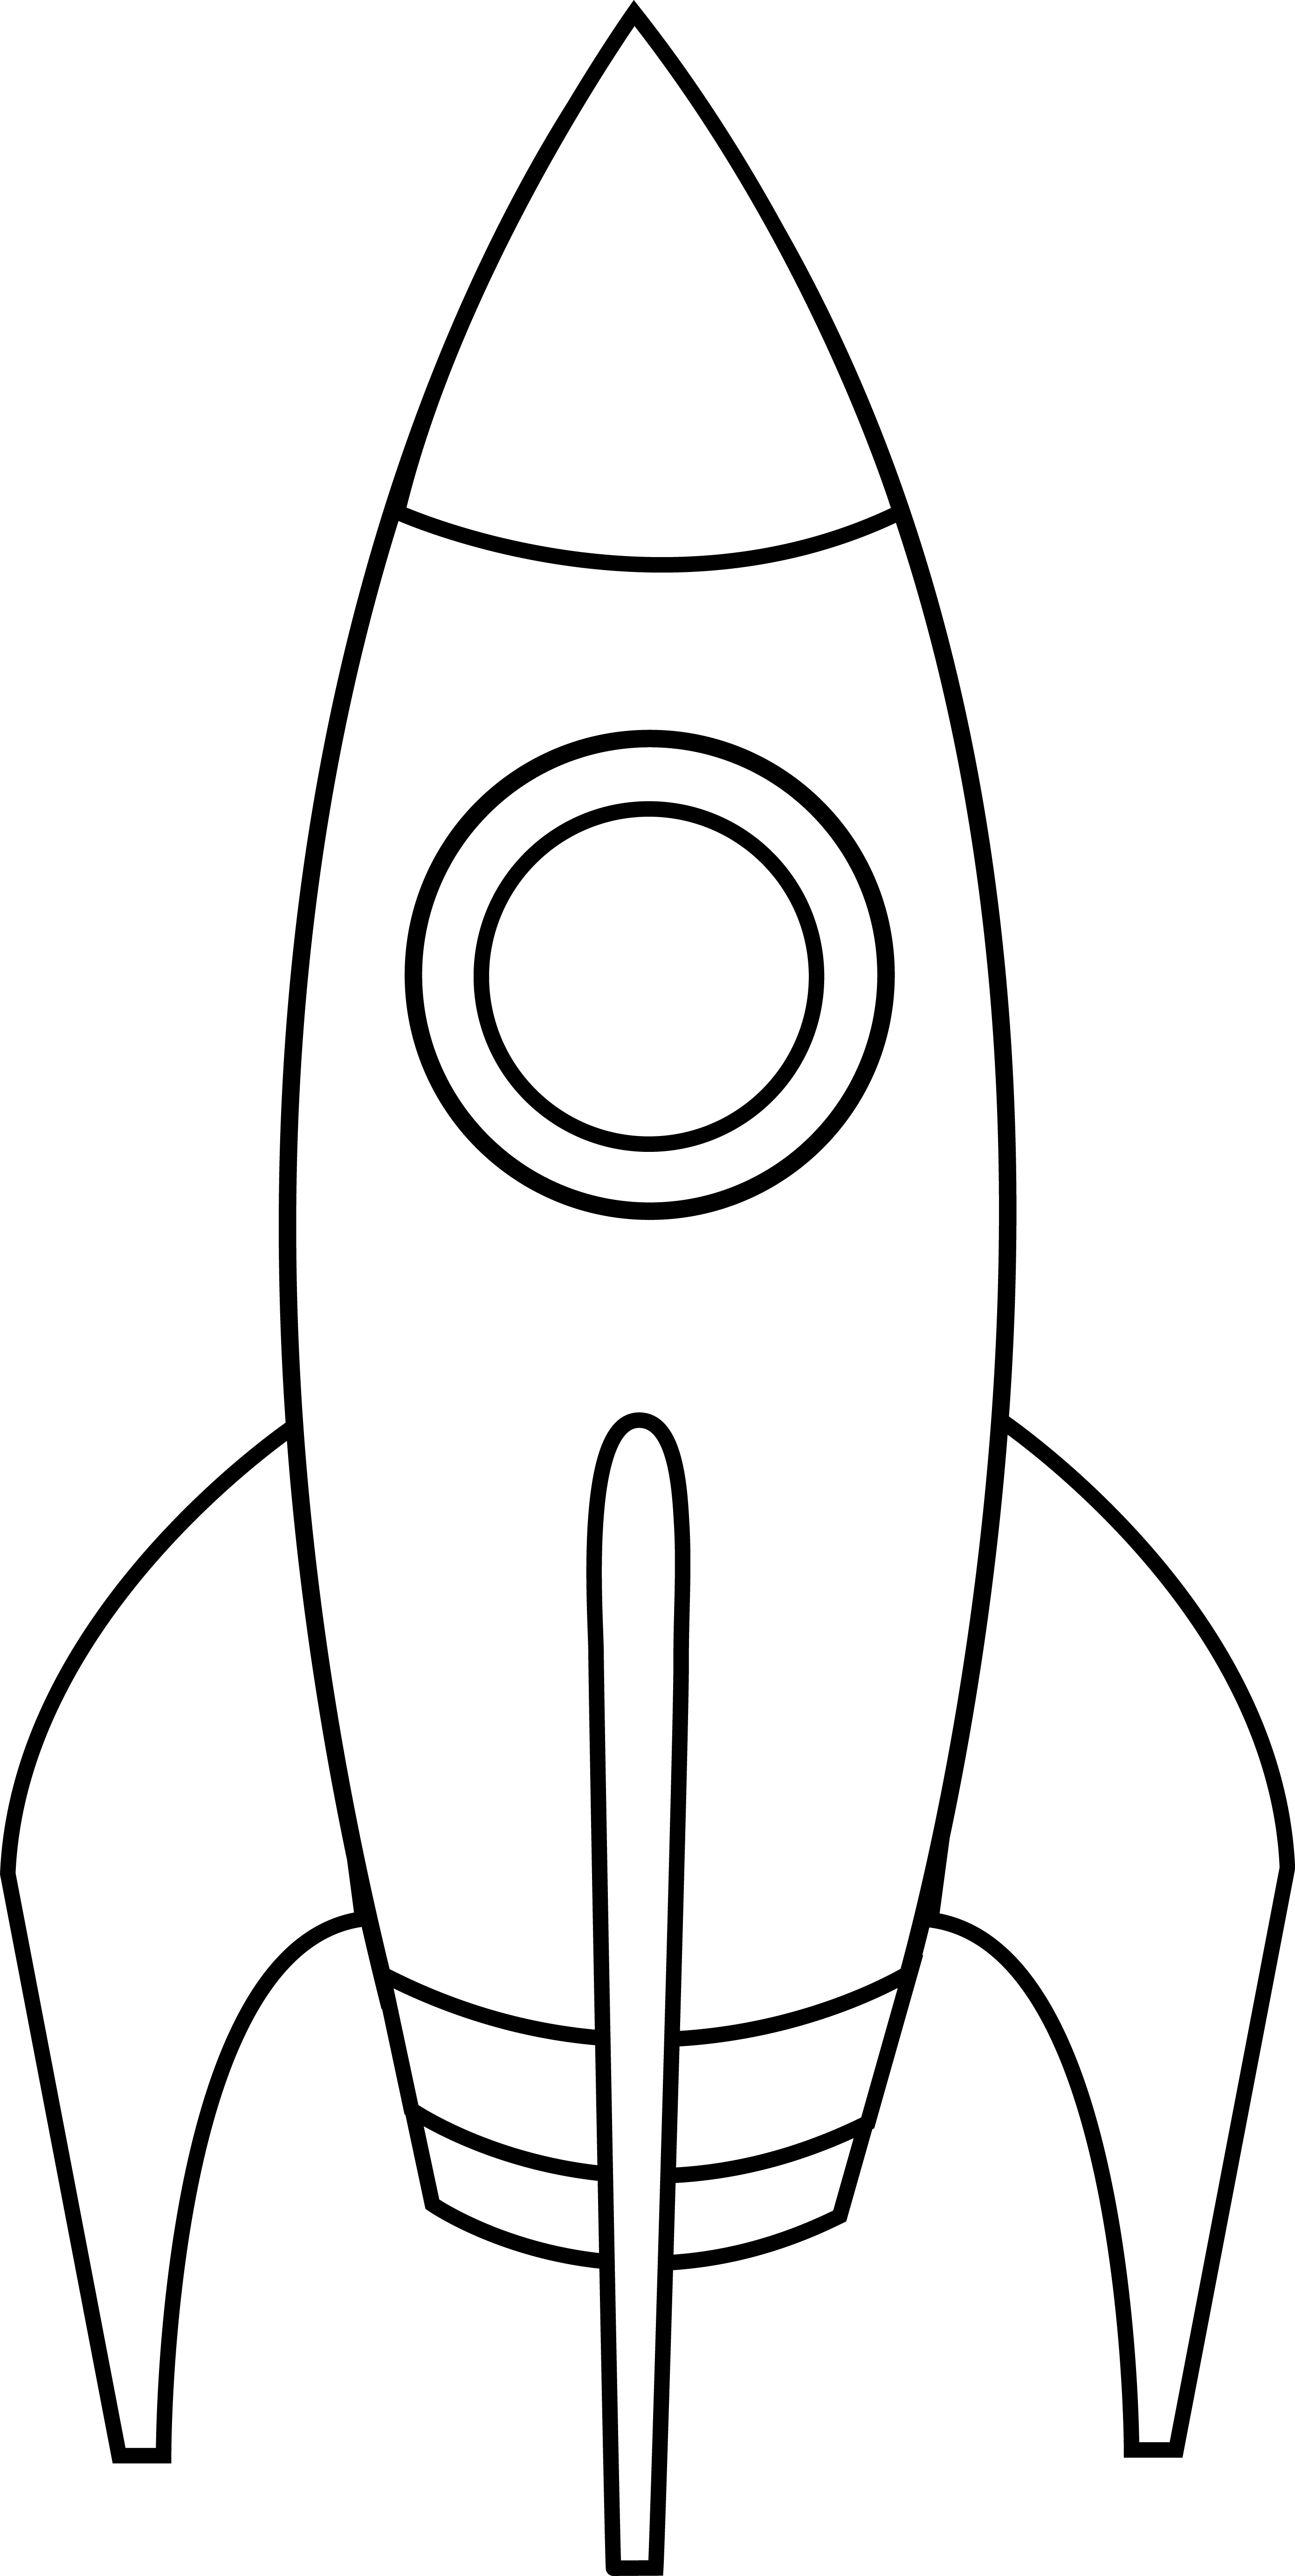 Free Rocket Ship Outline Download Free Clip Art Free